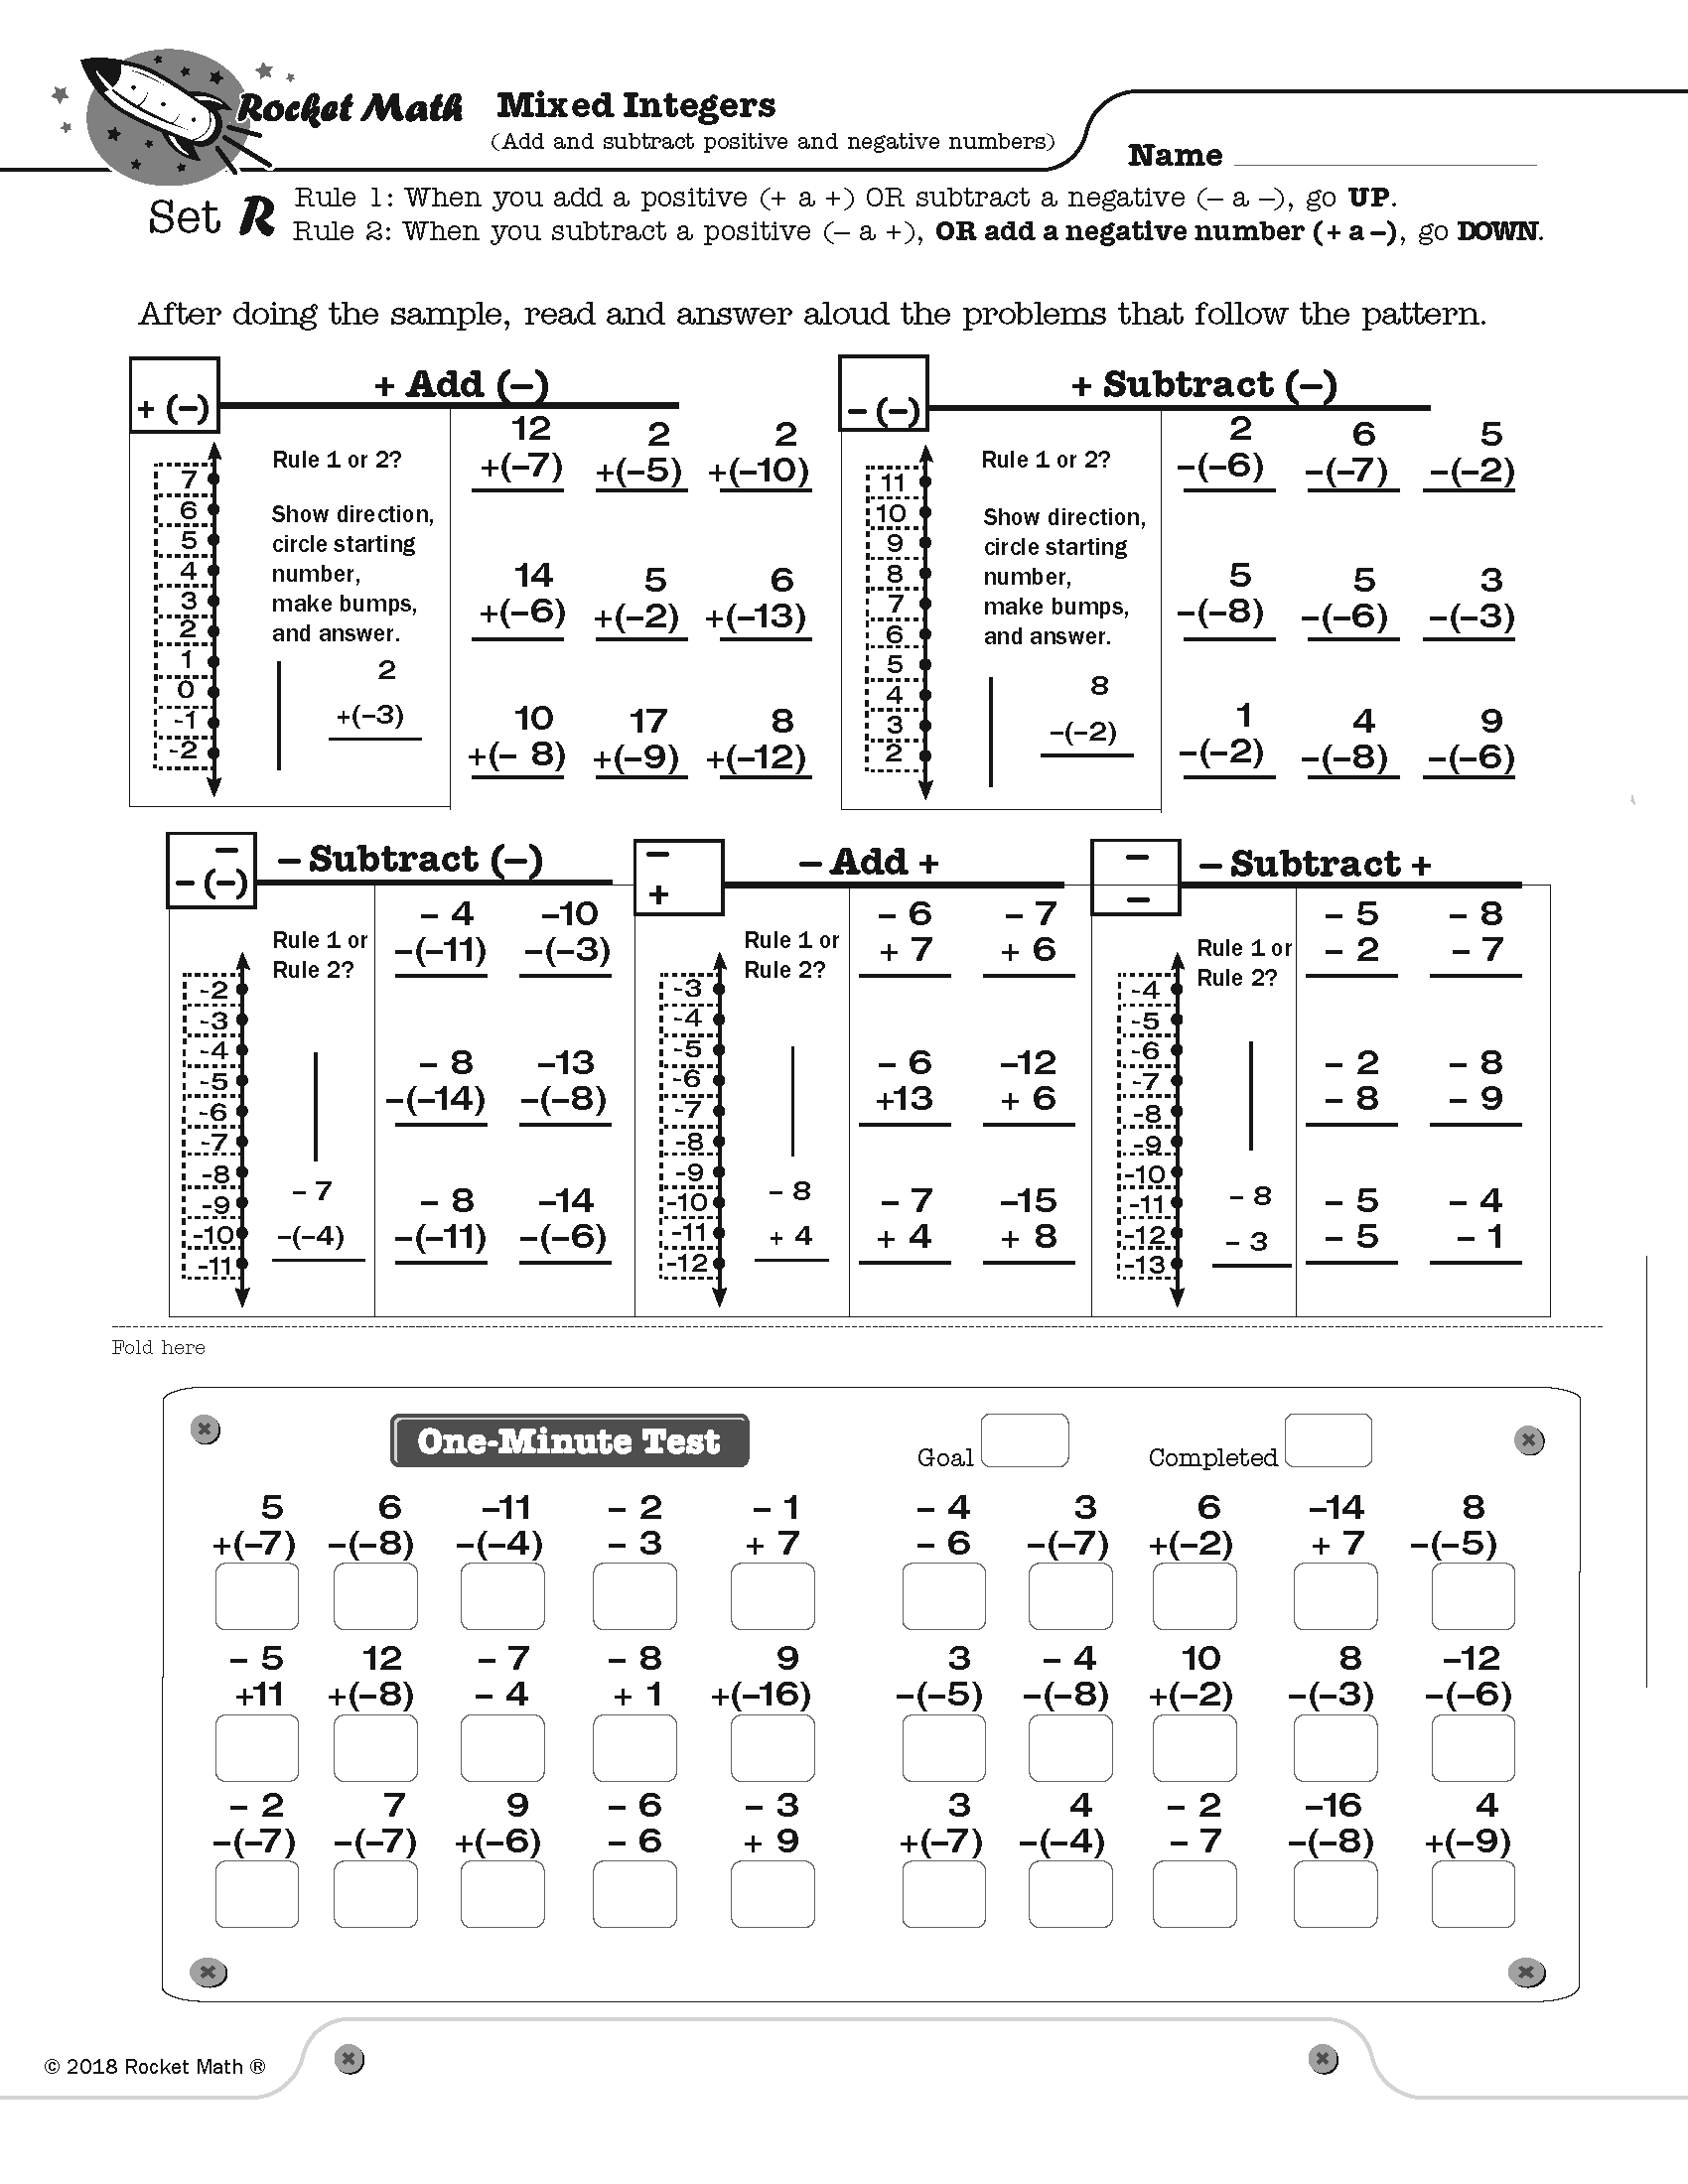 Mixed Interger Products For Addition And Subtraction